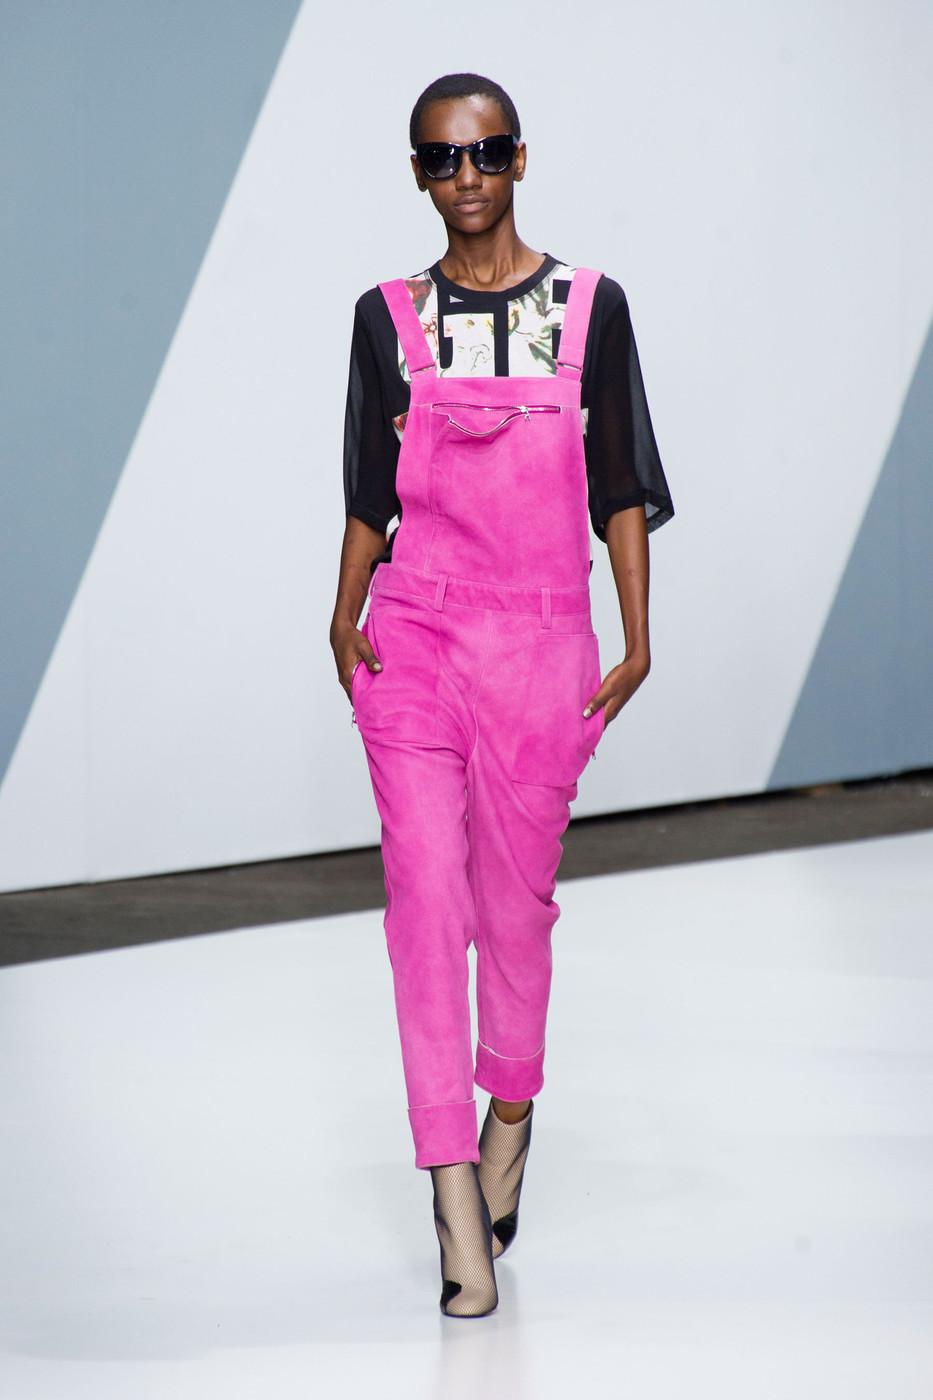 3.1 Phillip Lim Spring/Summer 2013 Hot pink overalls! Wonderful!